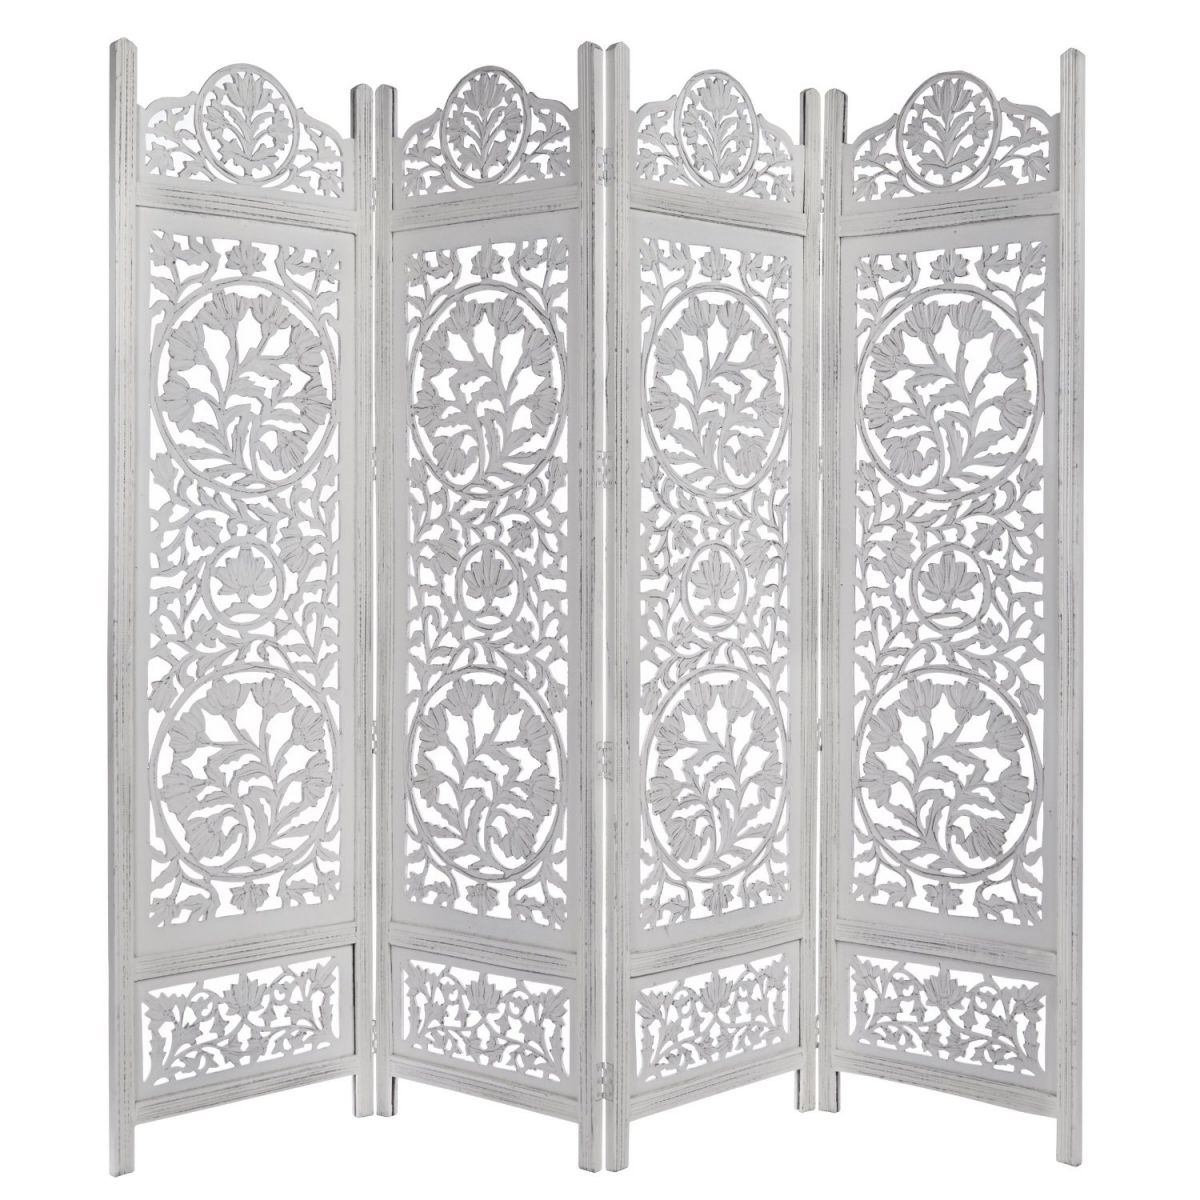 Kamal-The-Lotus-Antique-White-4-Panel-Handcrafted-Wood-Room-Divider-Screen-72x80